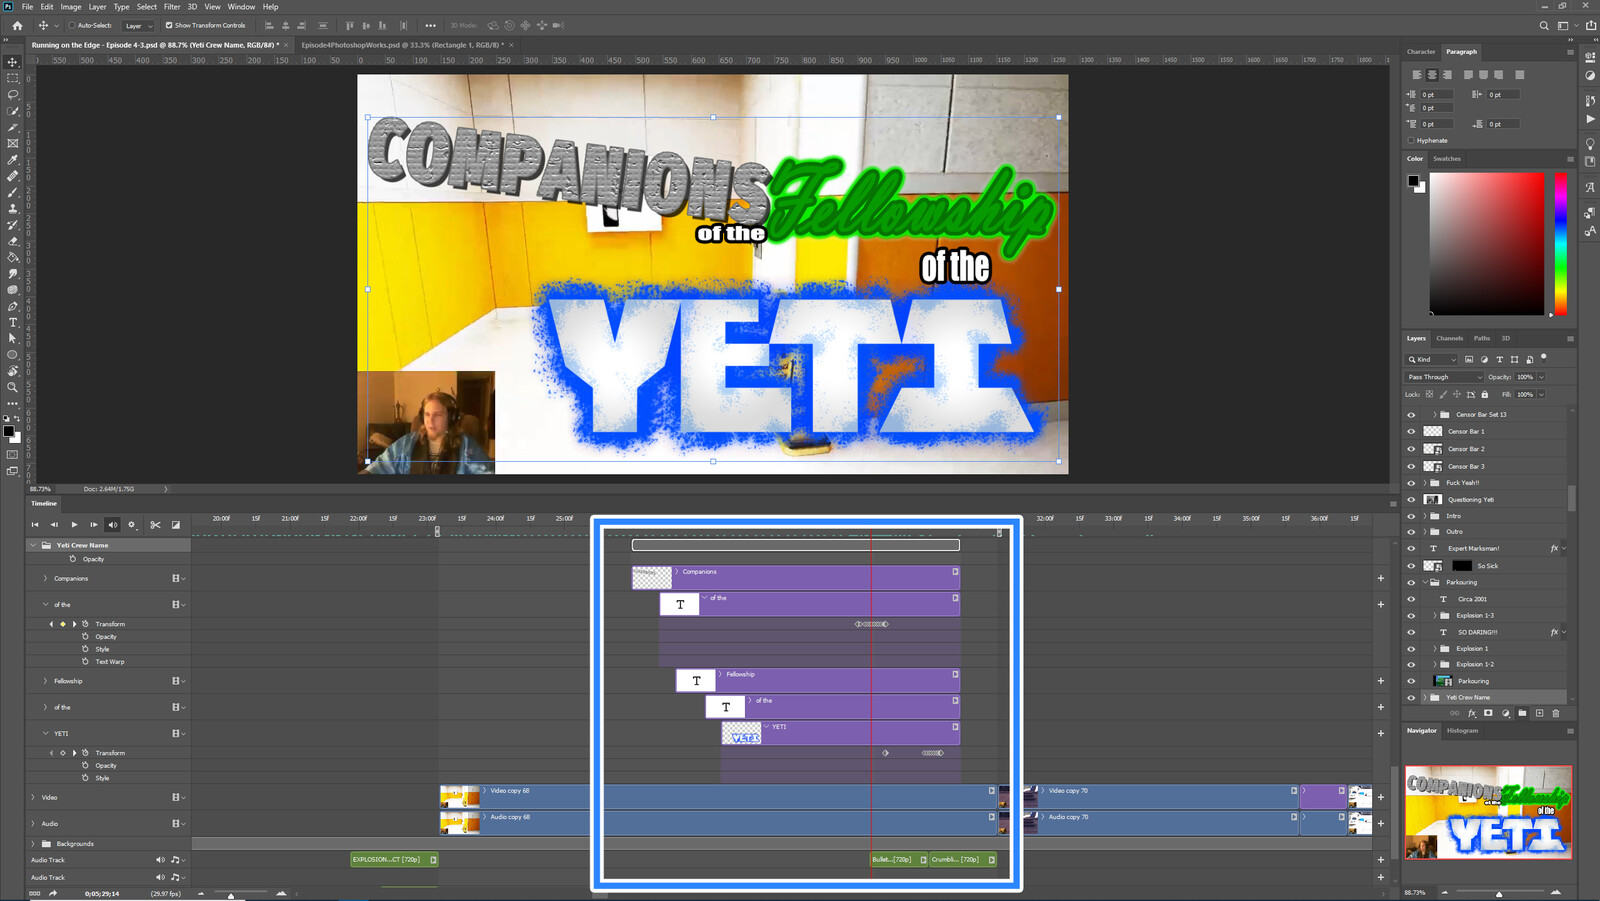 """The """"CotFotY #2"""" visual effect within Photoshop video editor"""